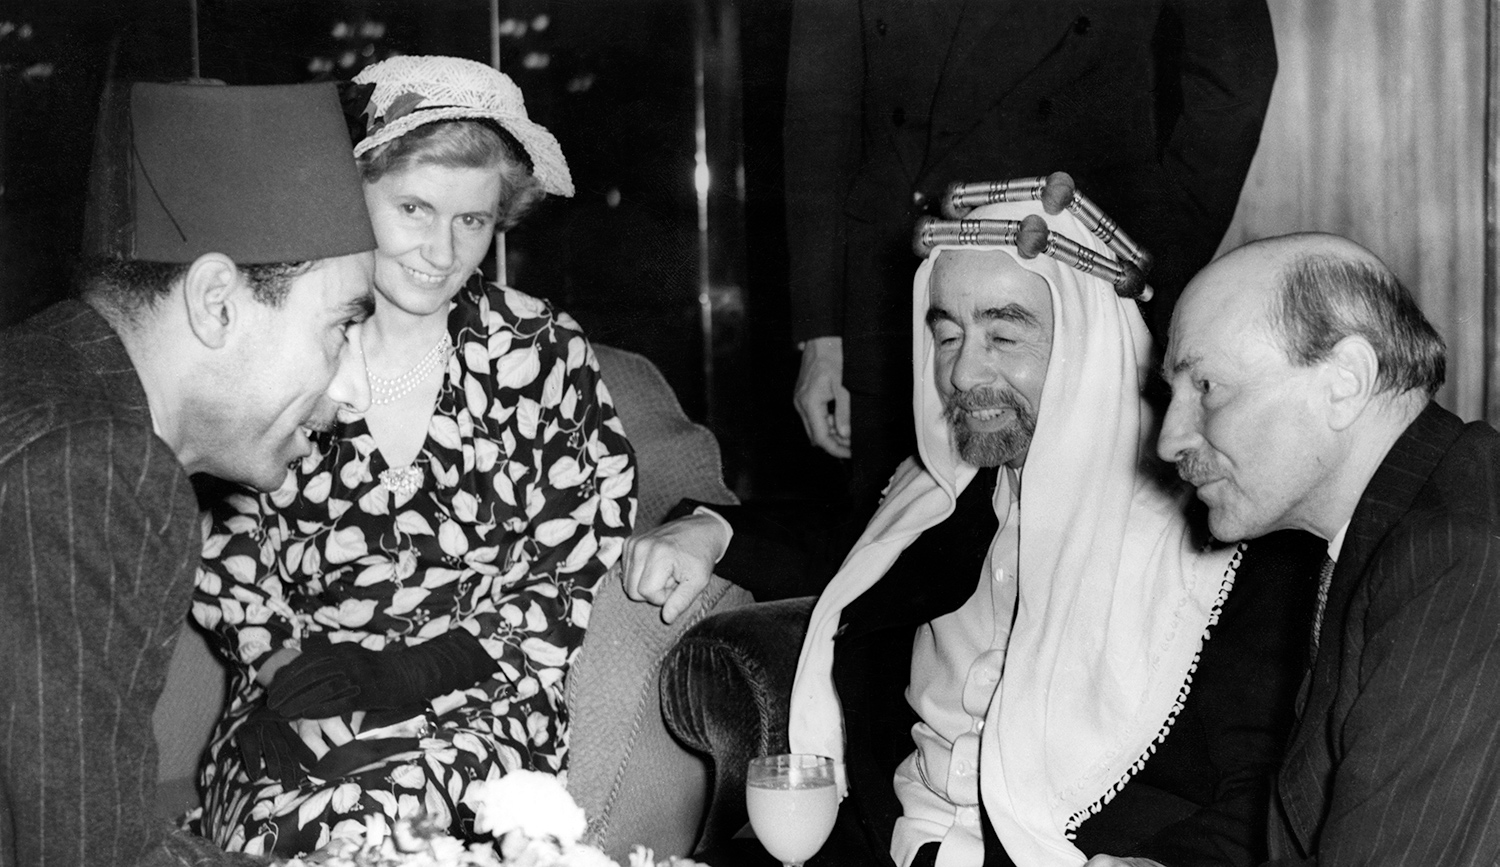 King Abdullah I of Jordan talking to a member of the Transjordanian Legation at the Dorchester Hotel, London, on September 1, 1949. With him are British Prime Minister Clement Attlee and Attlee's wife Violet. Edward Miller/Keystone/Hulton Archive/Getty Images.